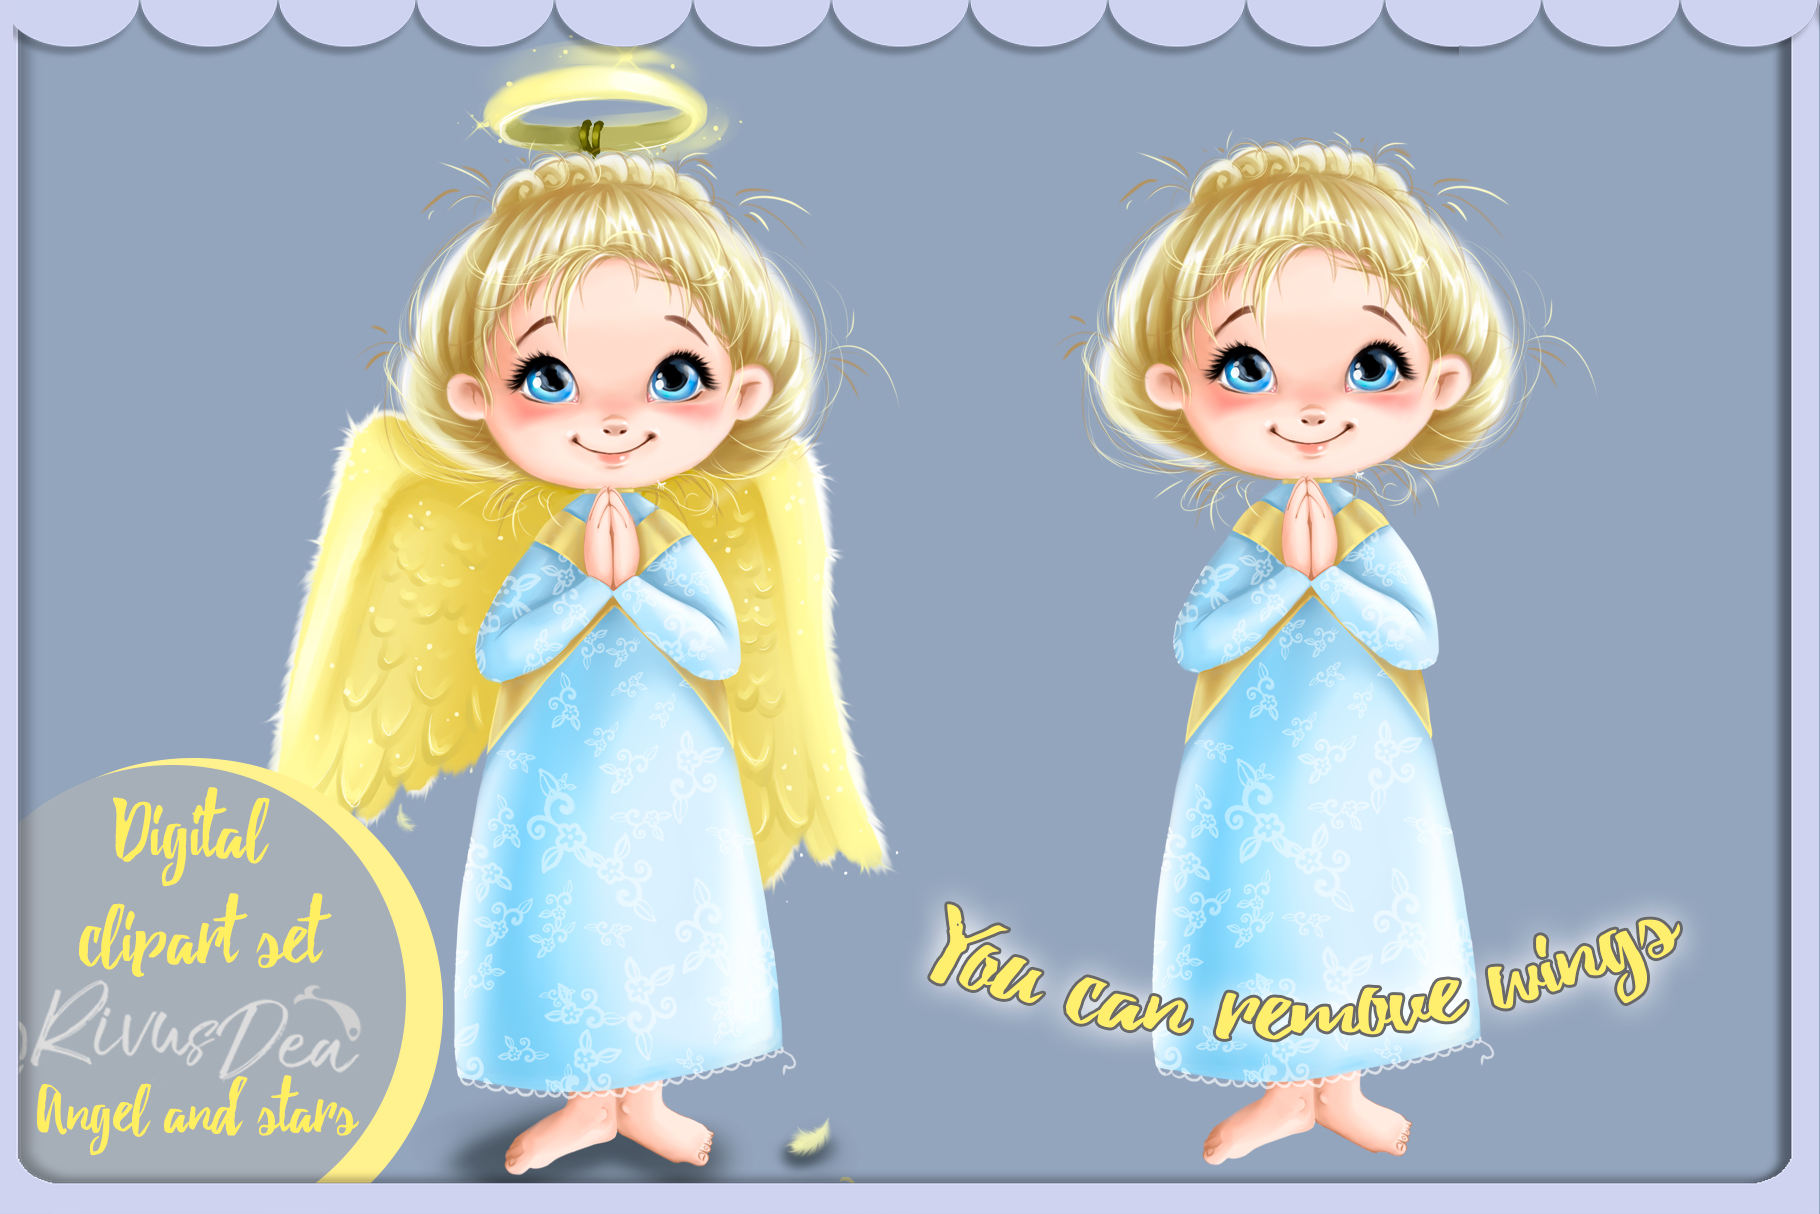 Cute Angel girl with moon and stars Christmas clipart kit example image 2